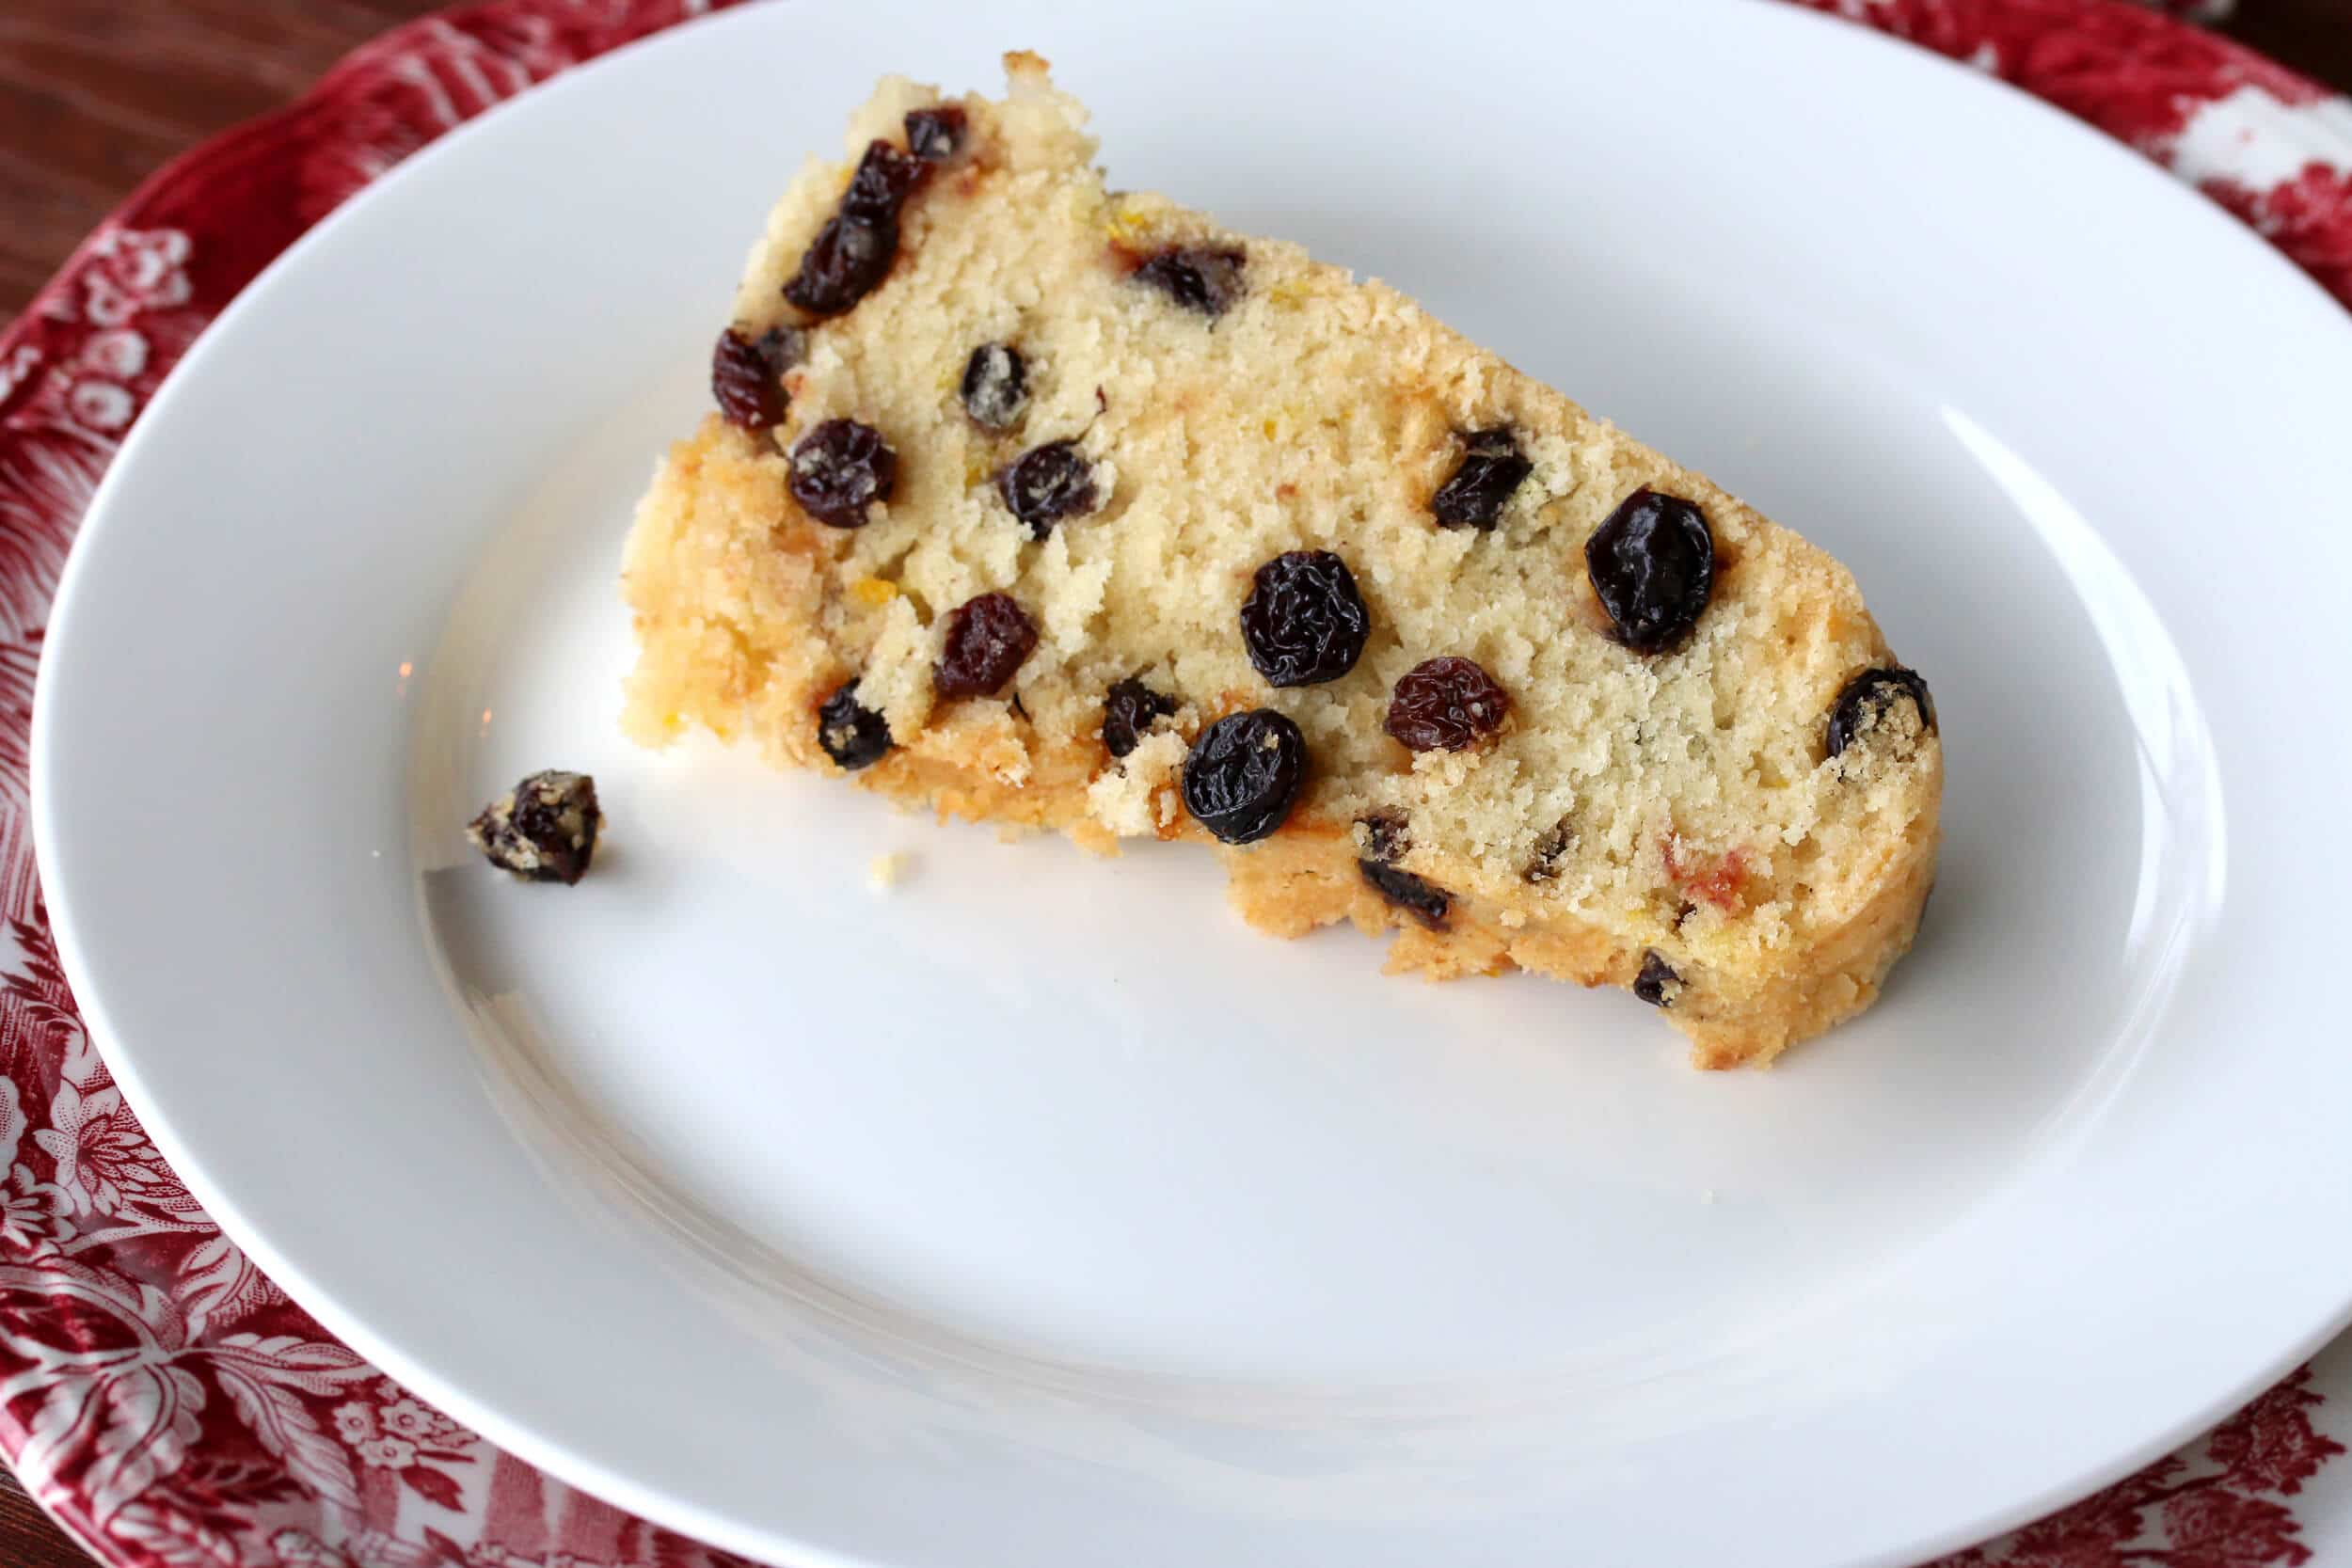 spotted dick recipe authentic traditional best english original currants custard suet butter steamed pudding british